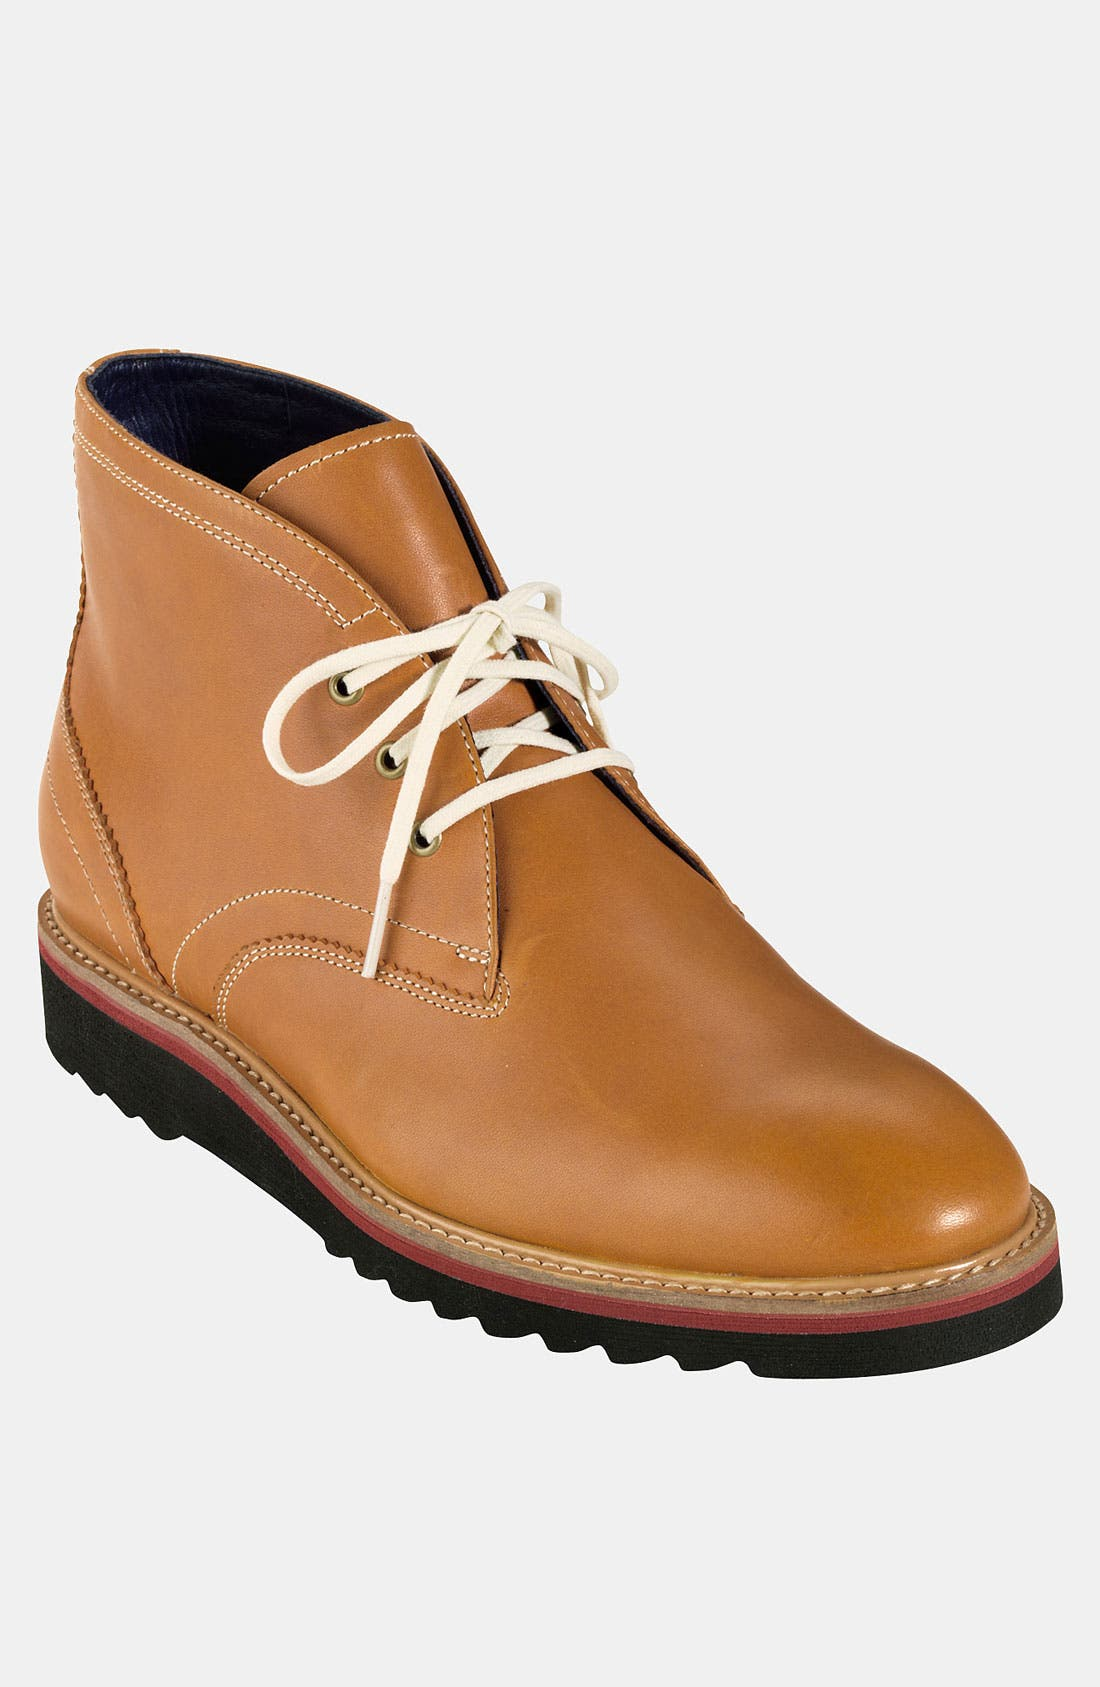 Main Image - Cole Haan 'Air Morris' Chukka Boot